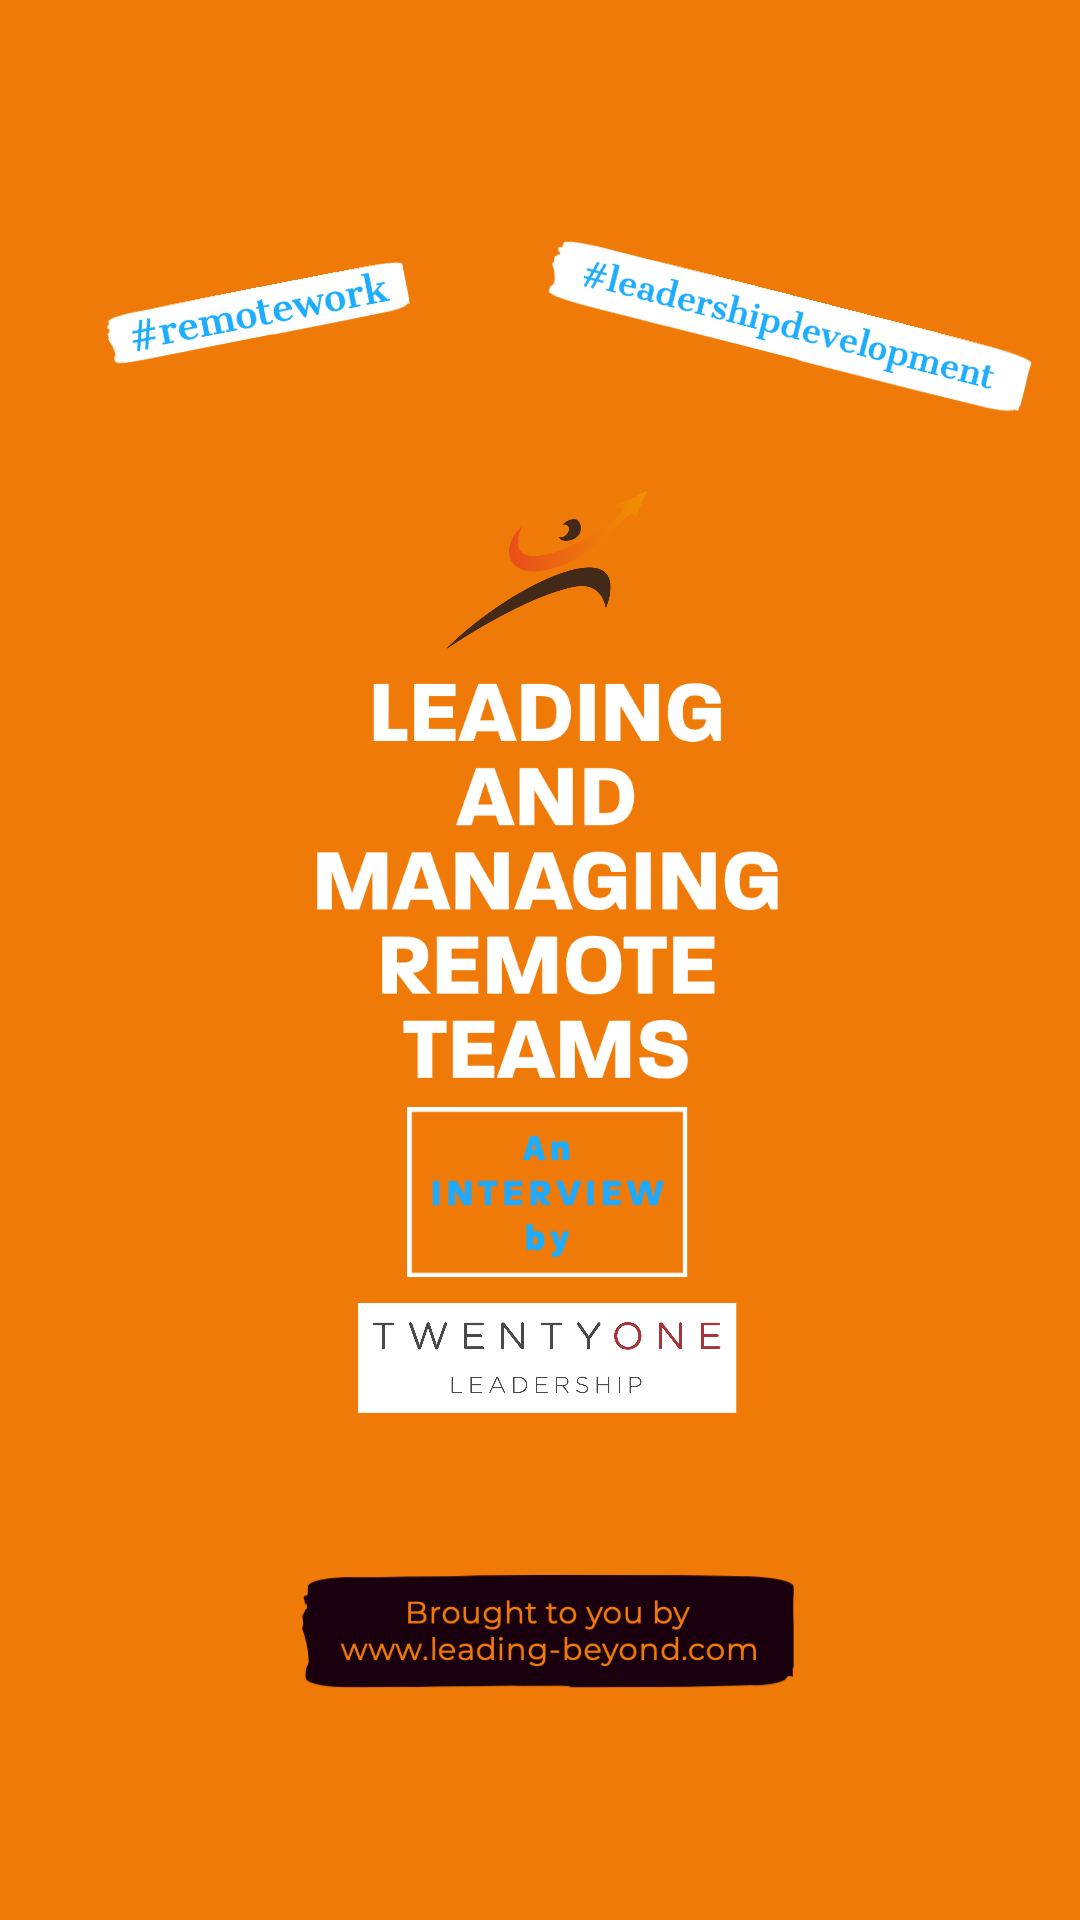 Leading and Managing Remote Teams Interview